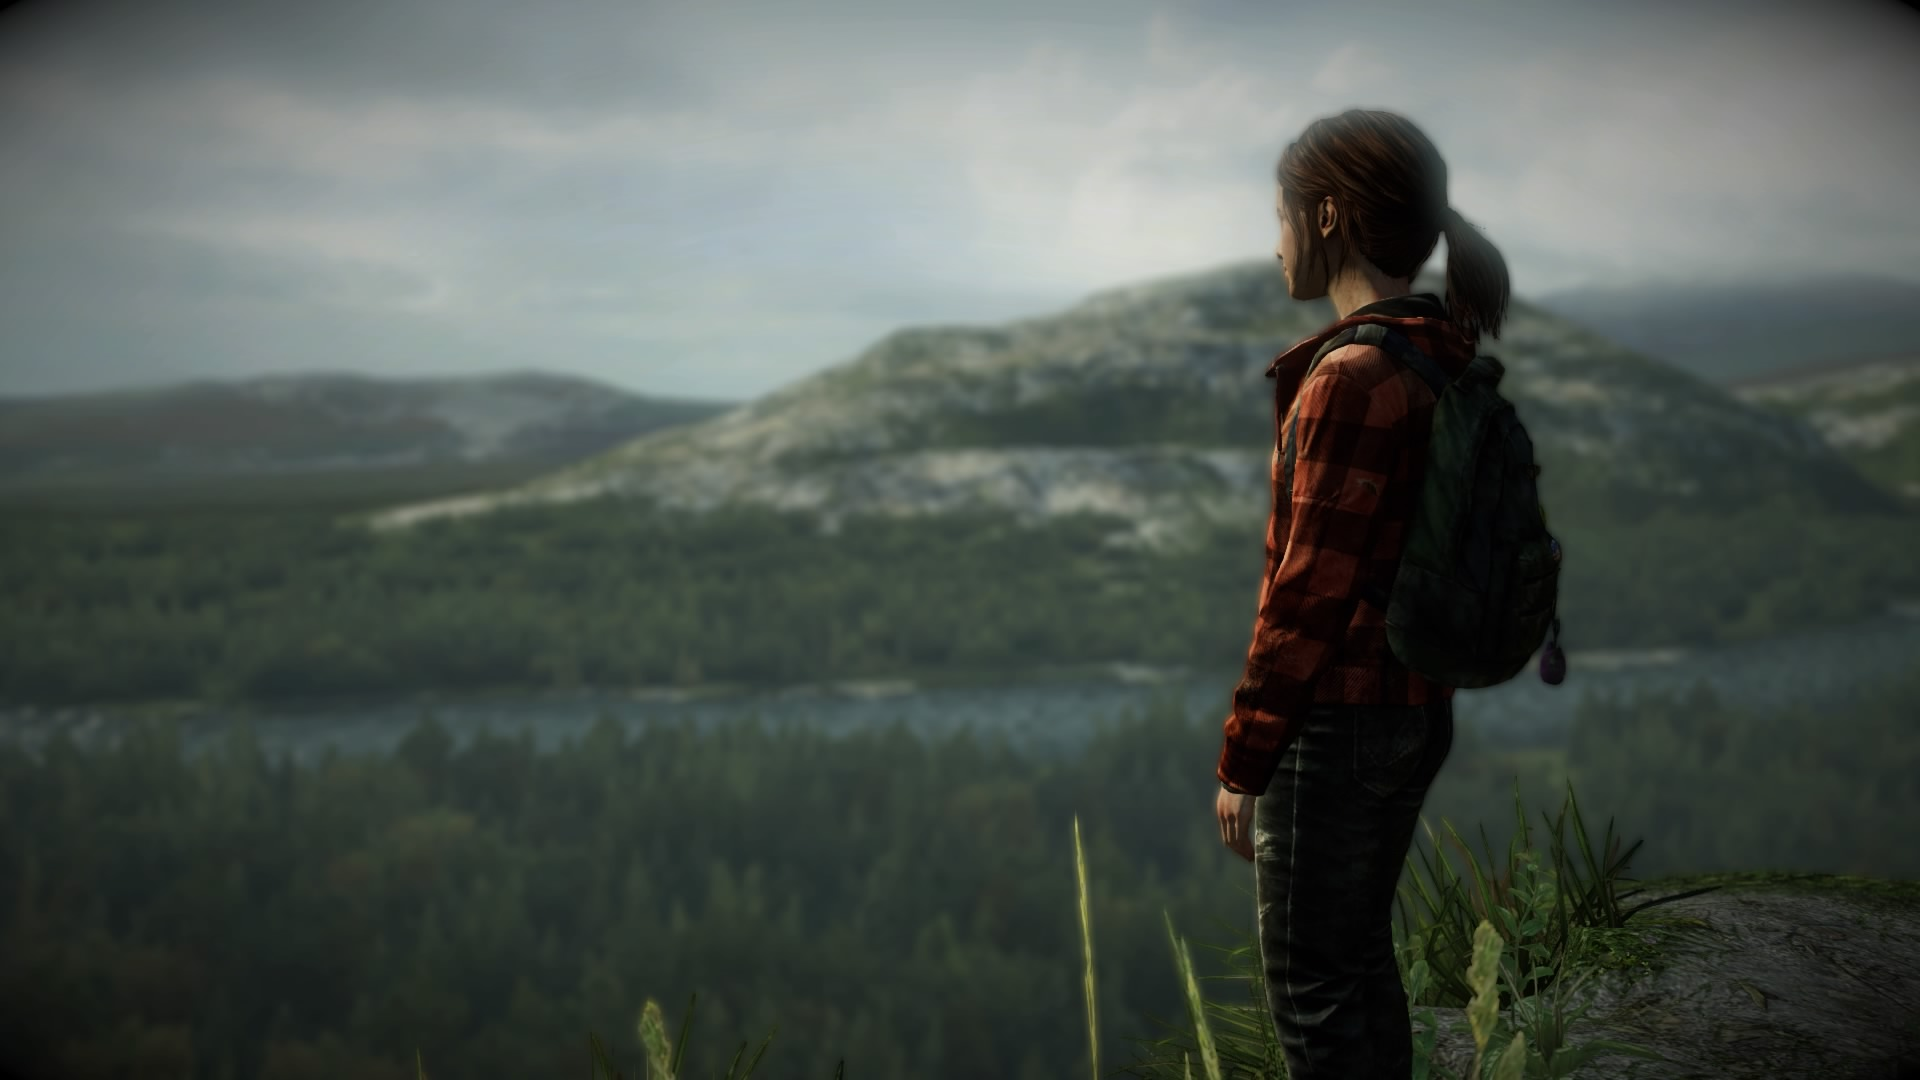 The Last Of Us HD Backgrounds, Pictures, Images